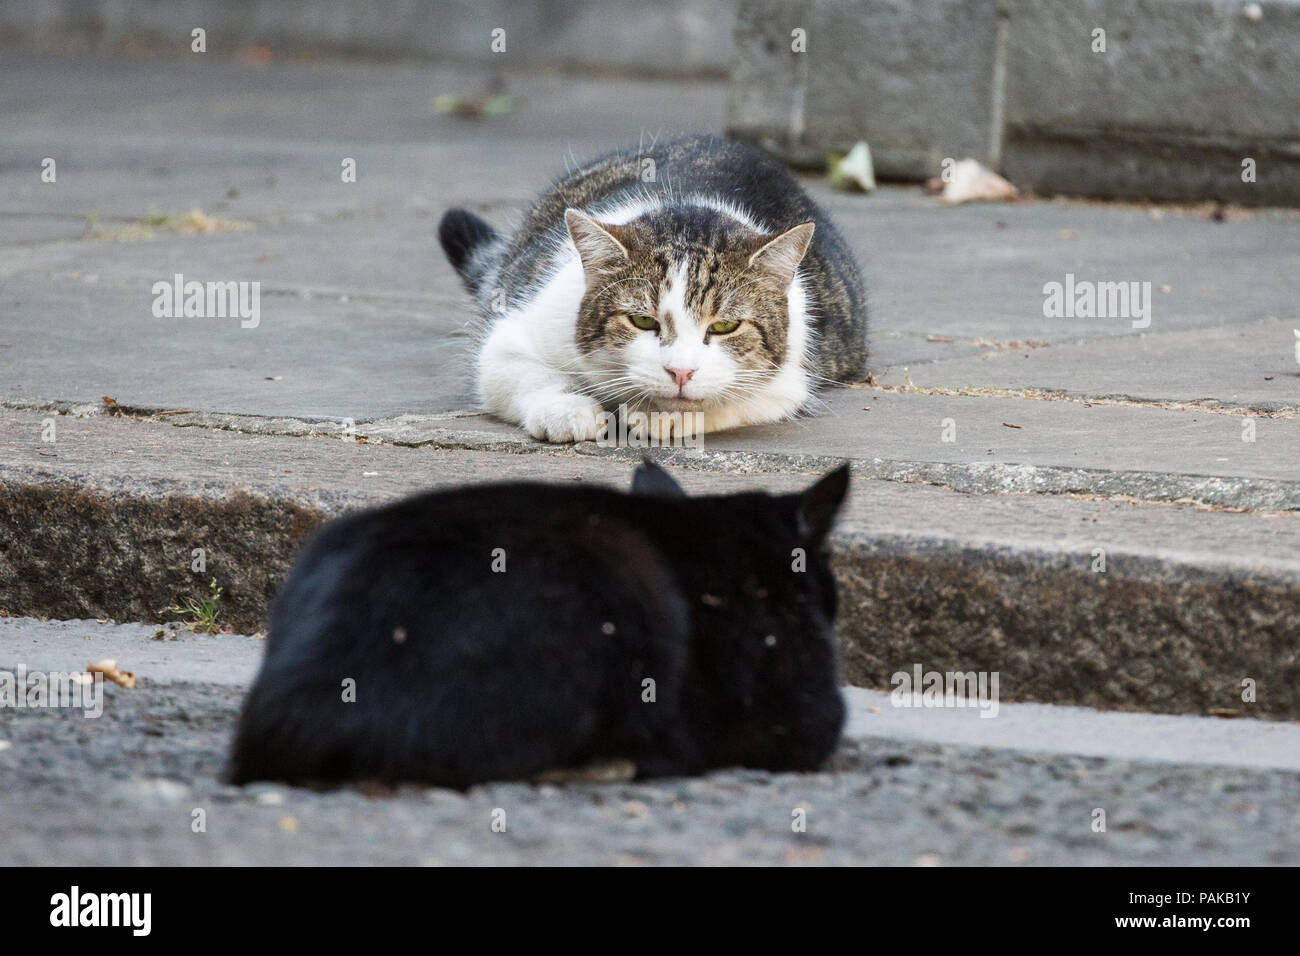 283f083908b Downing Street cats Larry and Palmerston observe each other on the hottest  day of the year. Larry, Chief Mouser to 10 Downing Street, and Palmerston,  ...